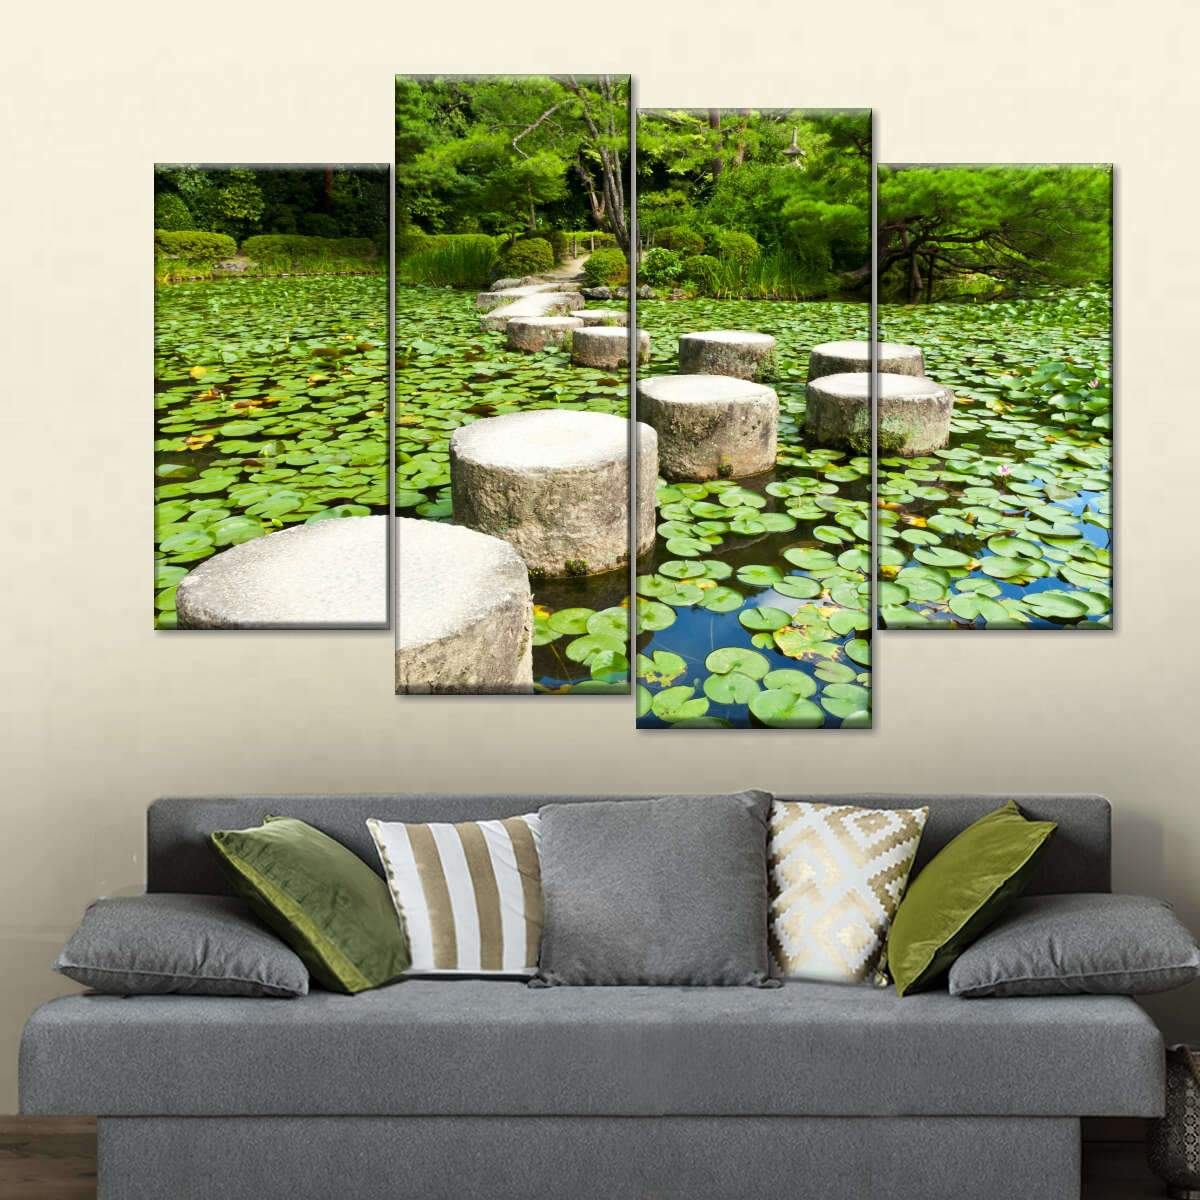 Japanese Stone Bridge Multi Panel Canvas Wall Art